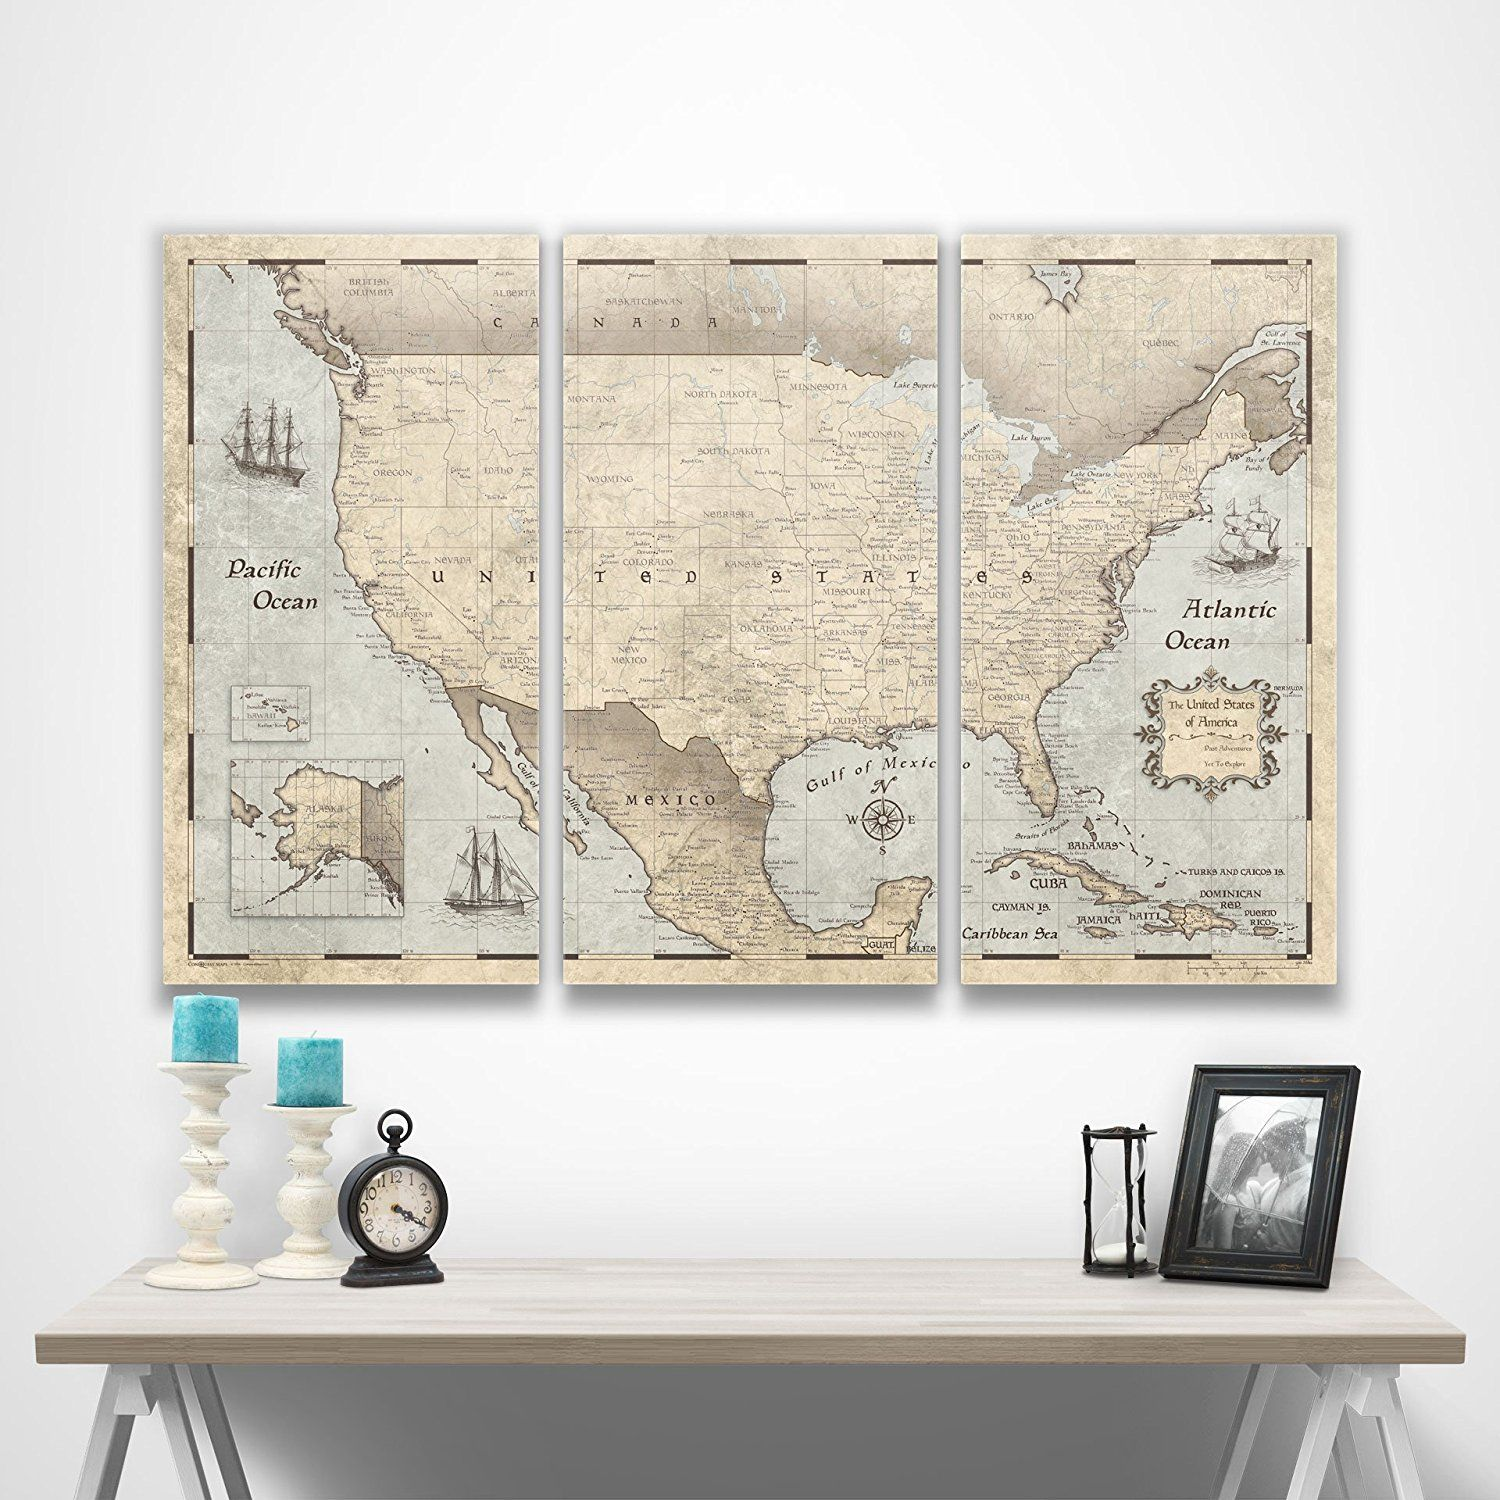 Amazon.com: United States Family Travel Map by Conquest Maps ... on united states map poster, united states map color, united states map 1860,